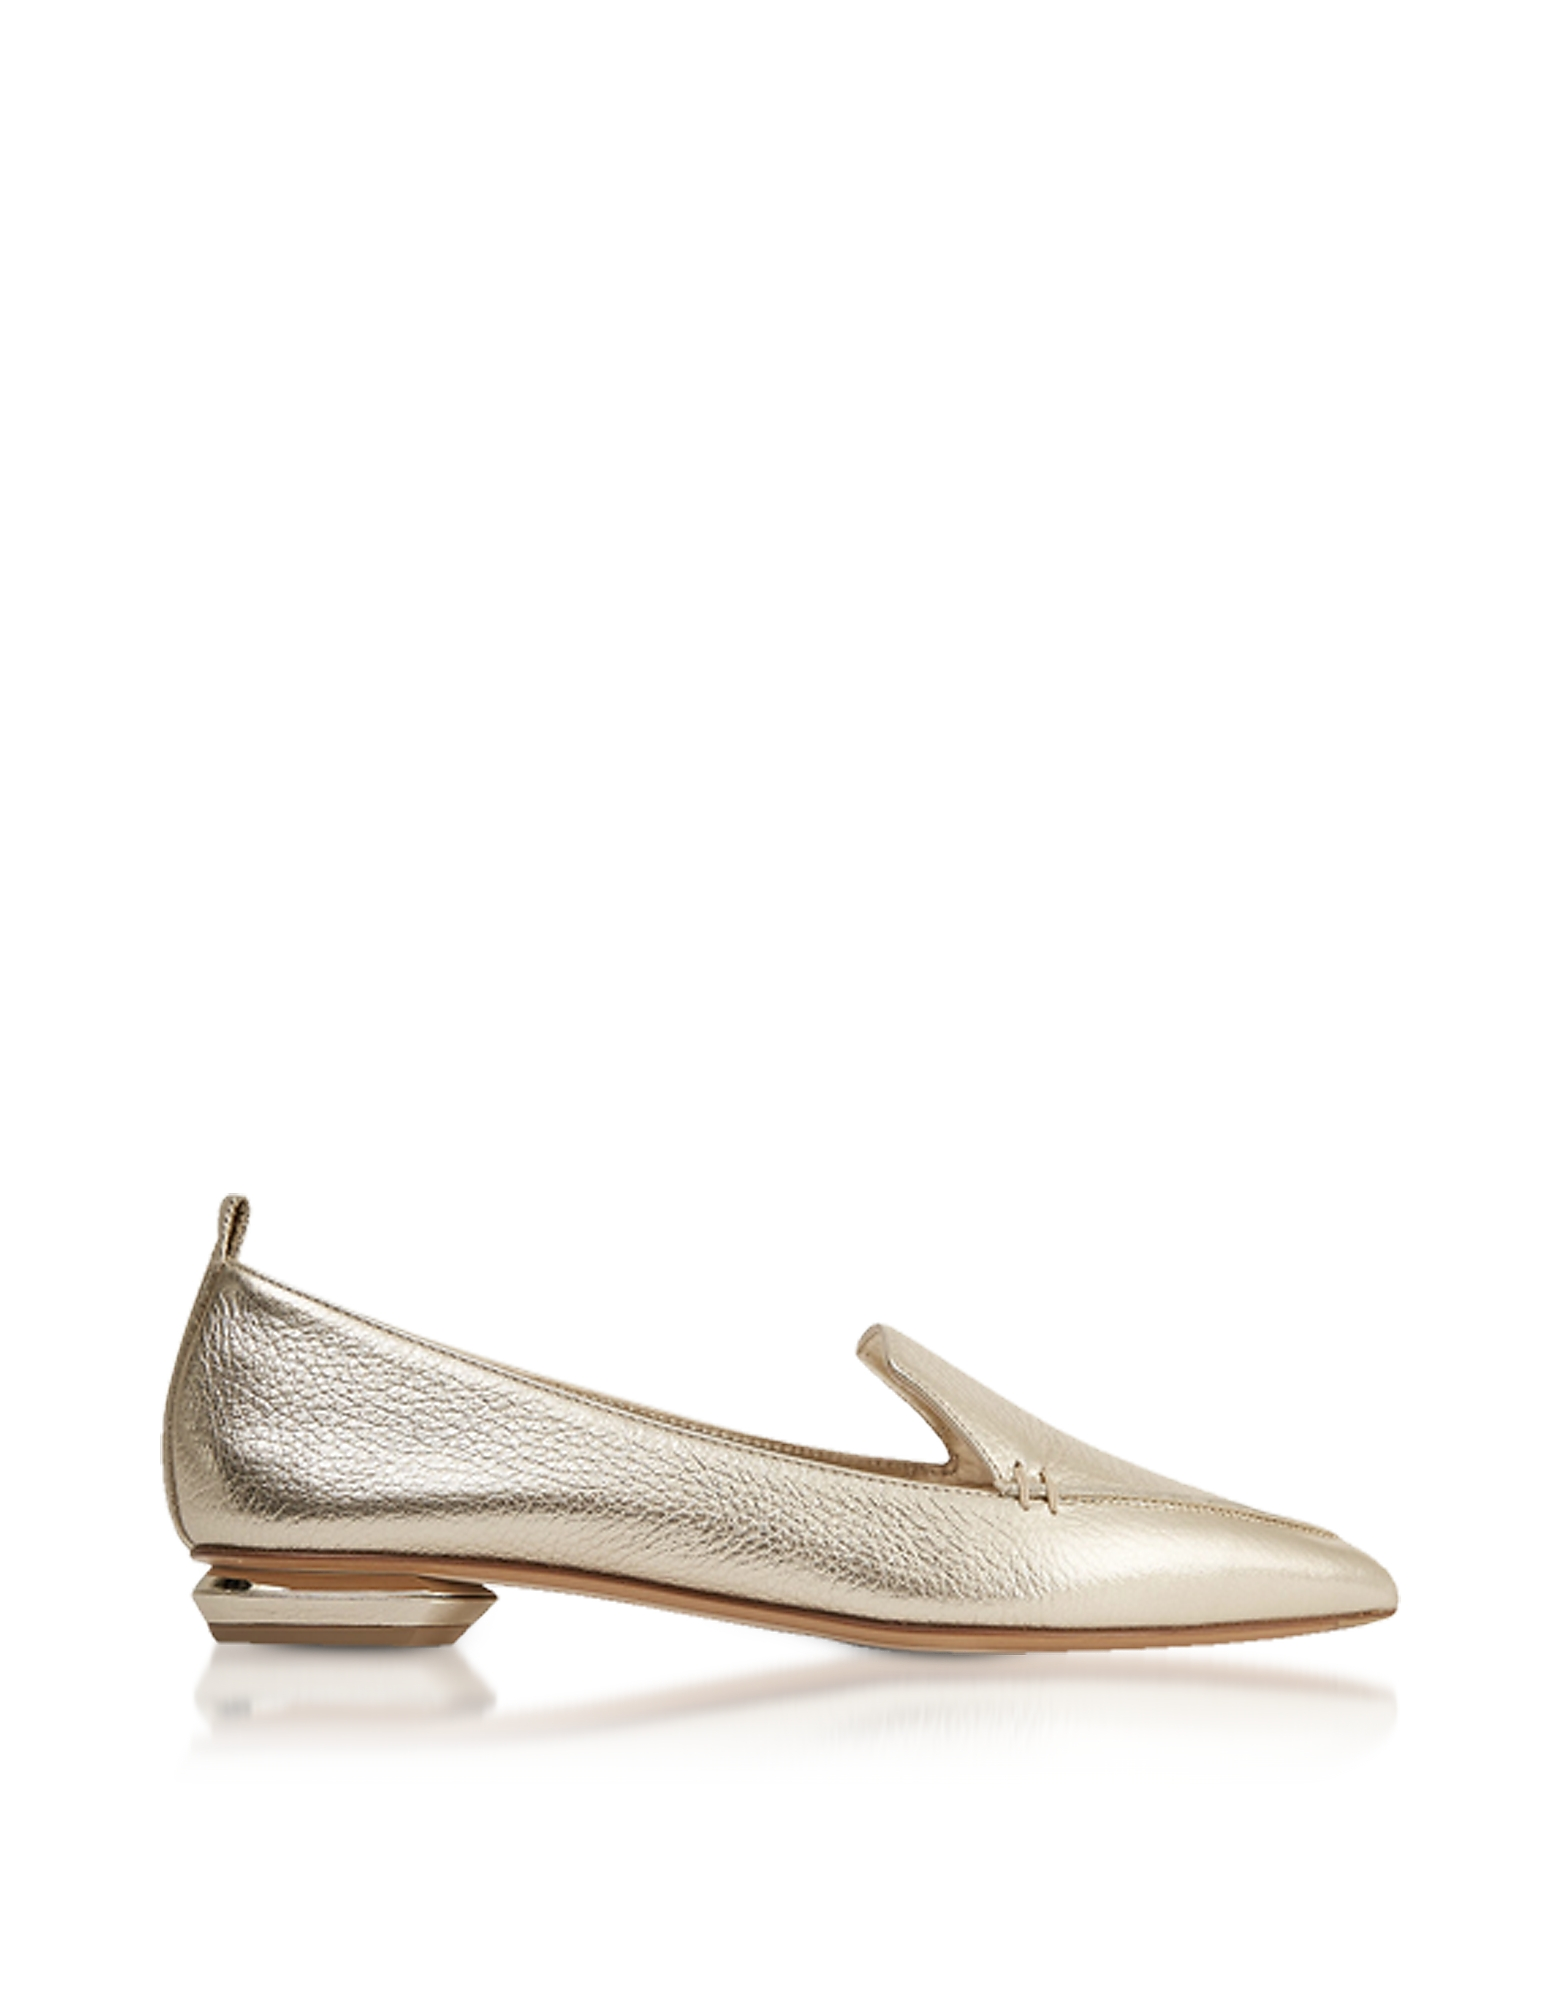 Nicholas Kirkwood Shoes, Beya Metallic Platino Tumbled Leather Loafers